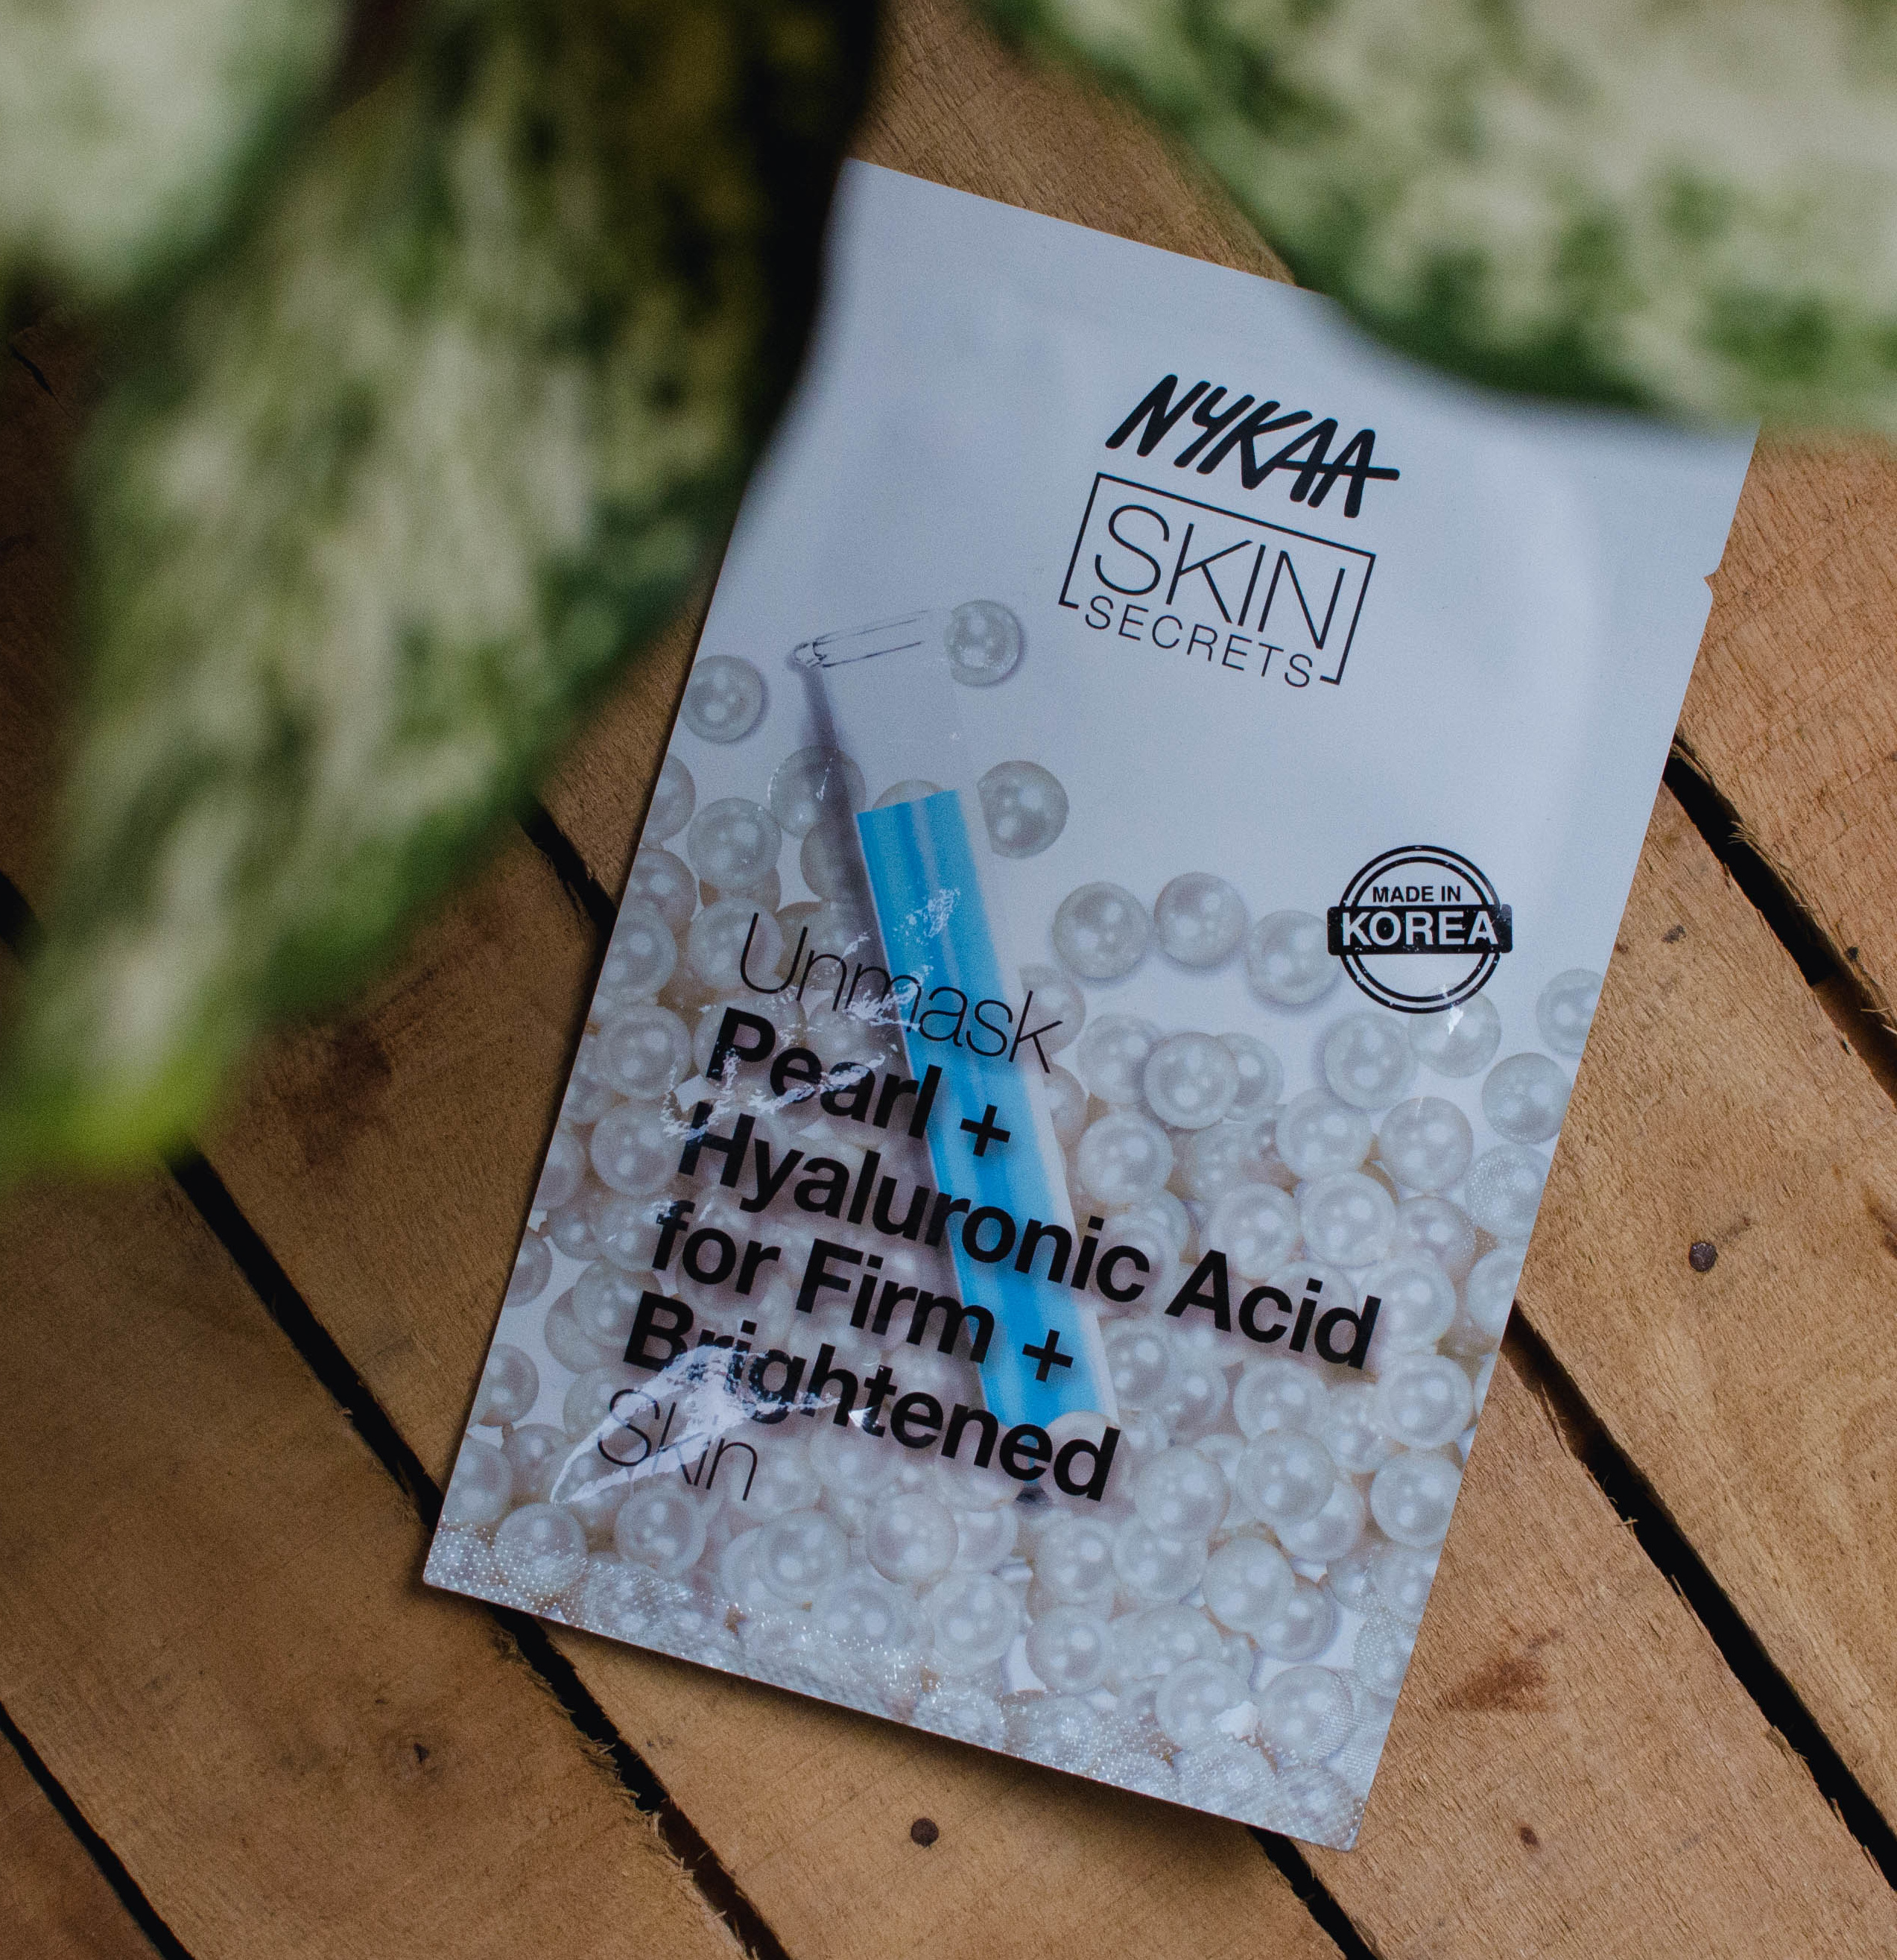 Nykaa Skin Secrets Face Sheet Mask Pearl+Hyaluronic Acid Review | Cherry On Top